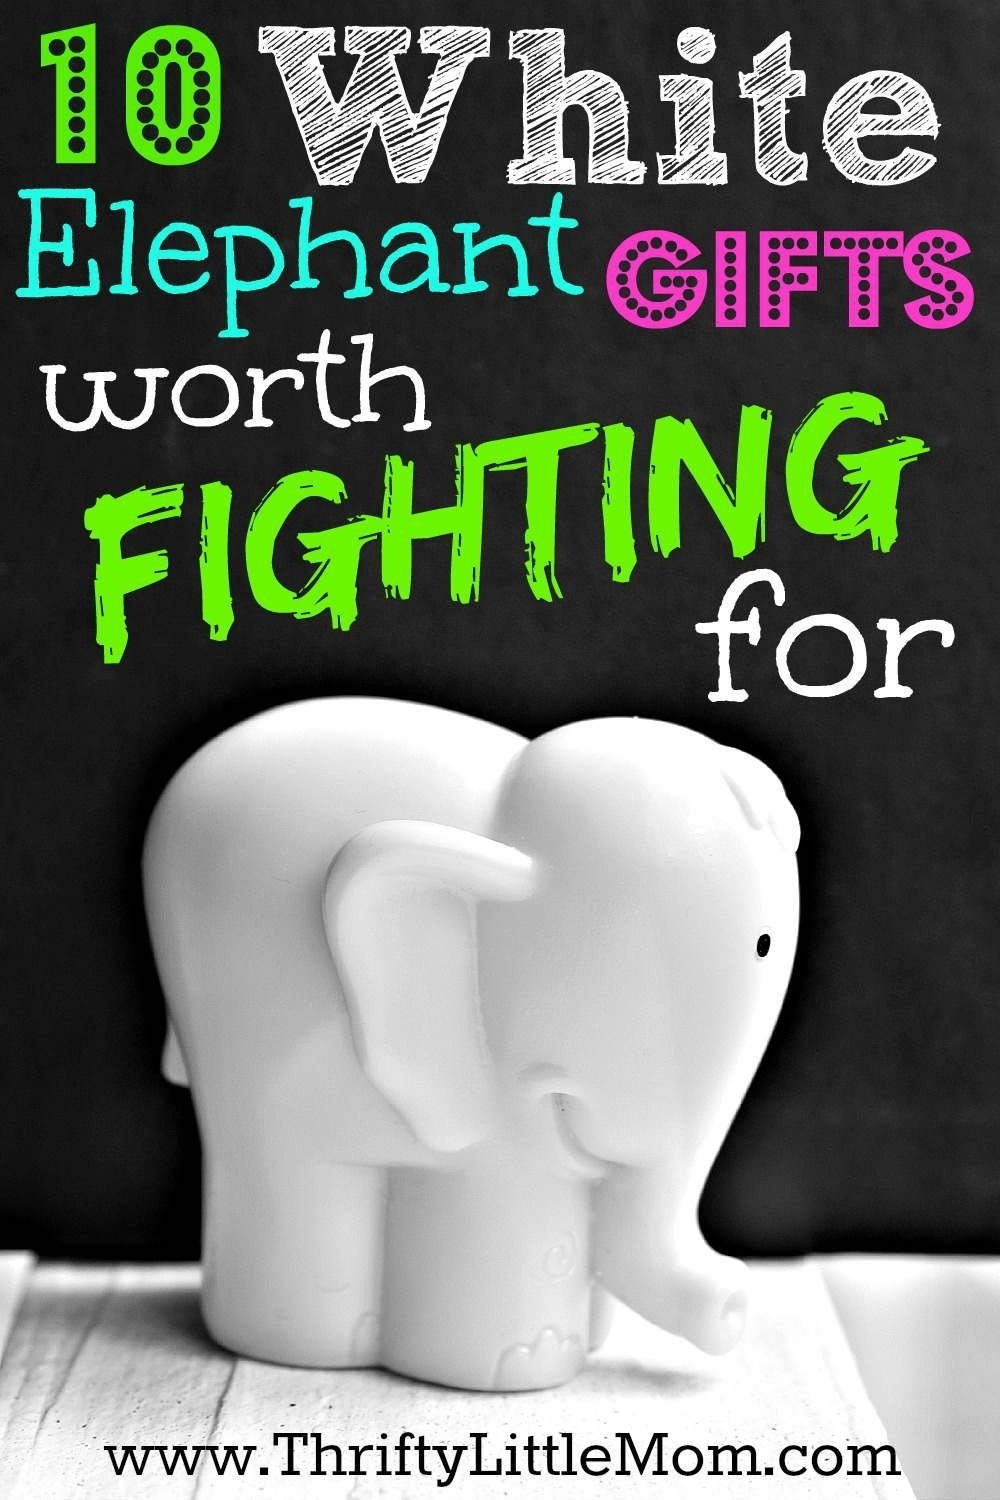 10 Spectacular Ideas For White Elephant Gift white elephant gifts worth fighting for yankee swap ideas white 31 2020